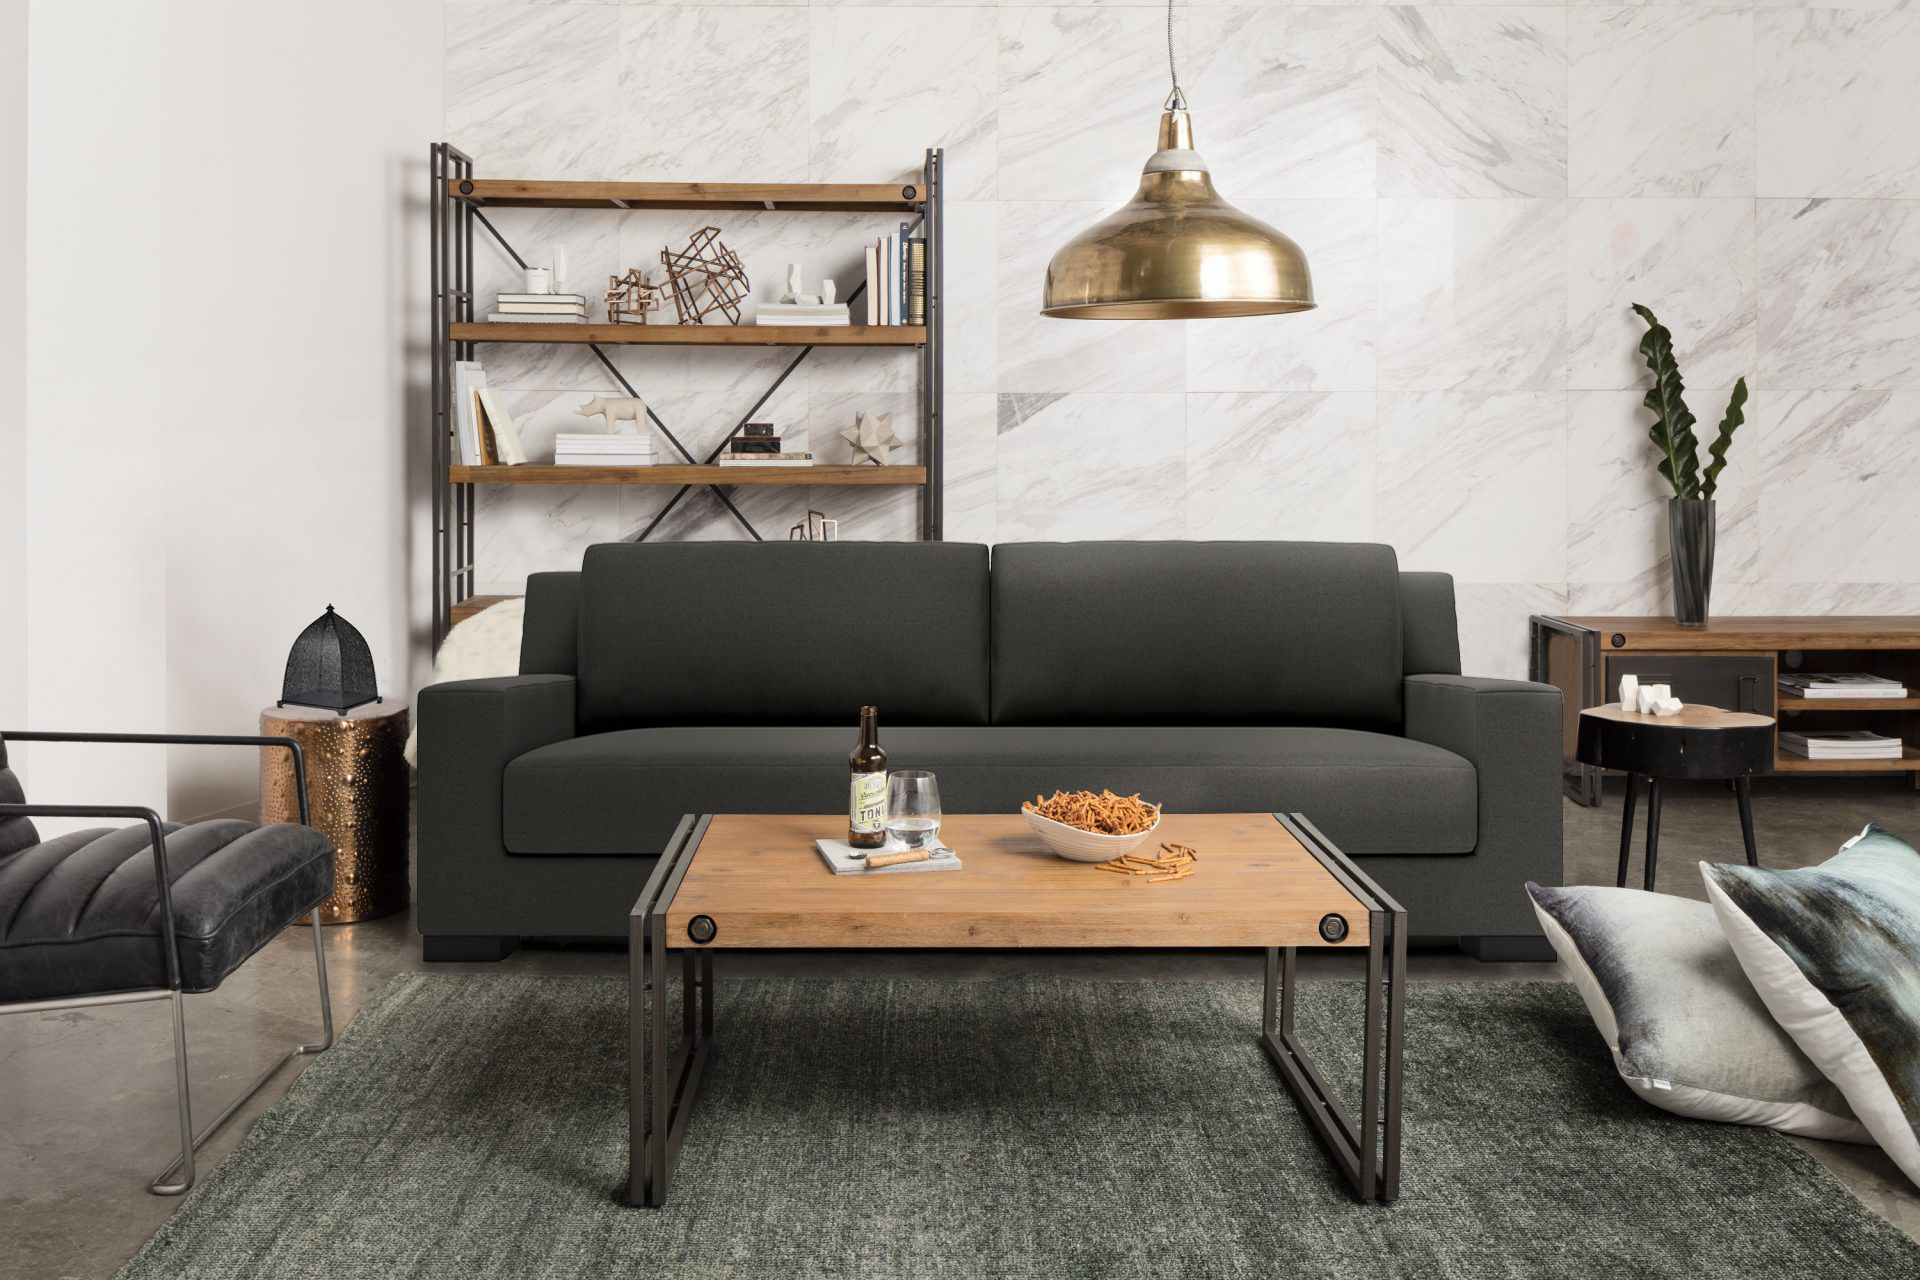 Our valentino is one of our most modern pieces at kavuus all of our sofas and sectionals are made to order and fully customizable proudly made in canada